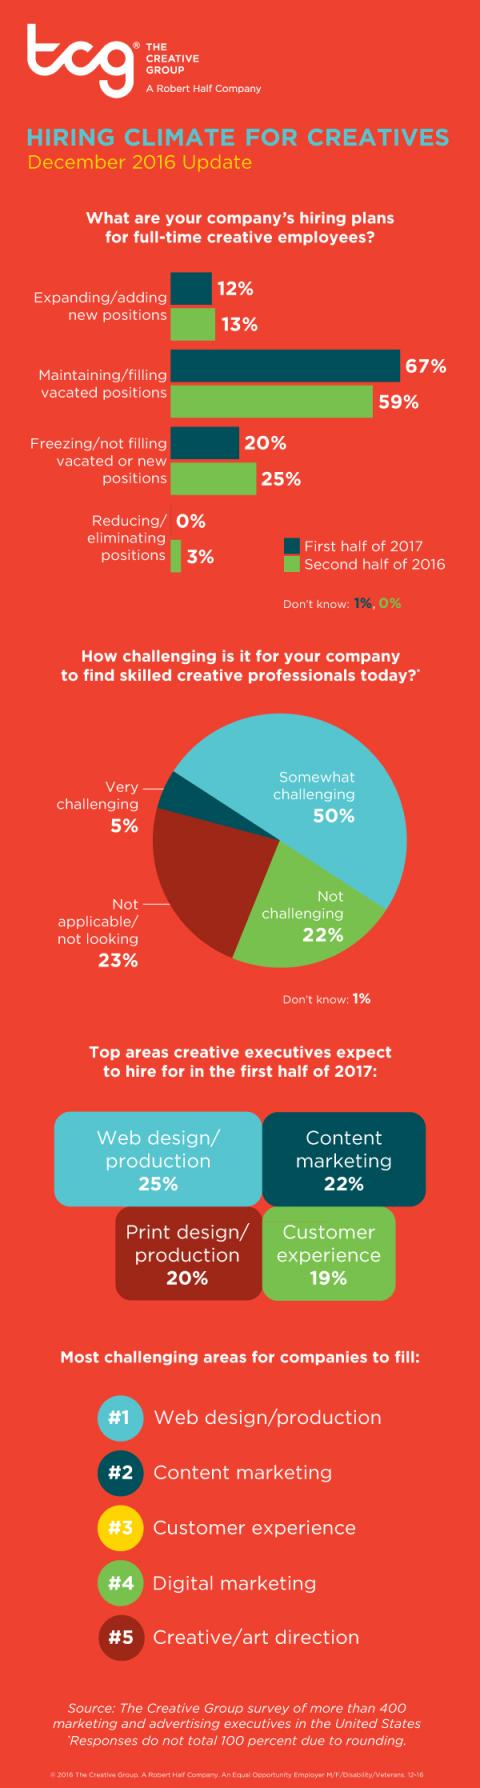 An infographic from The Creative Group reveals the hiring climate for creative professionals in December 2016.